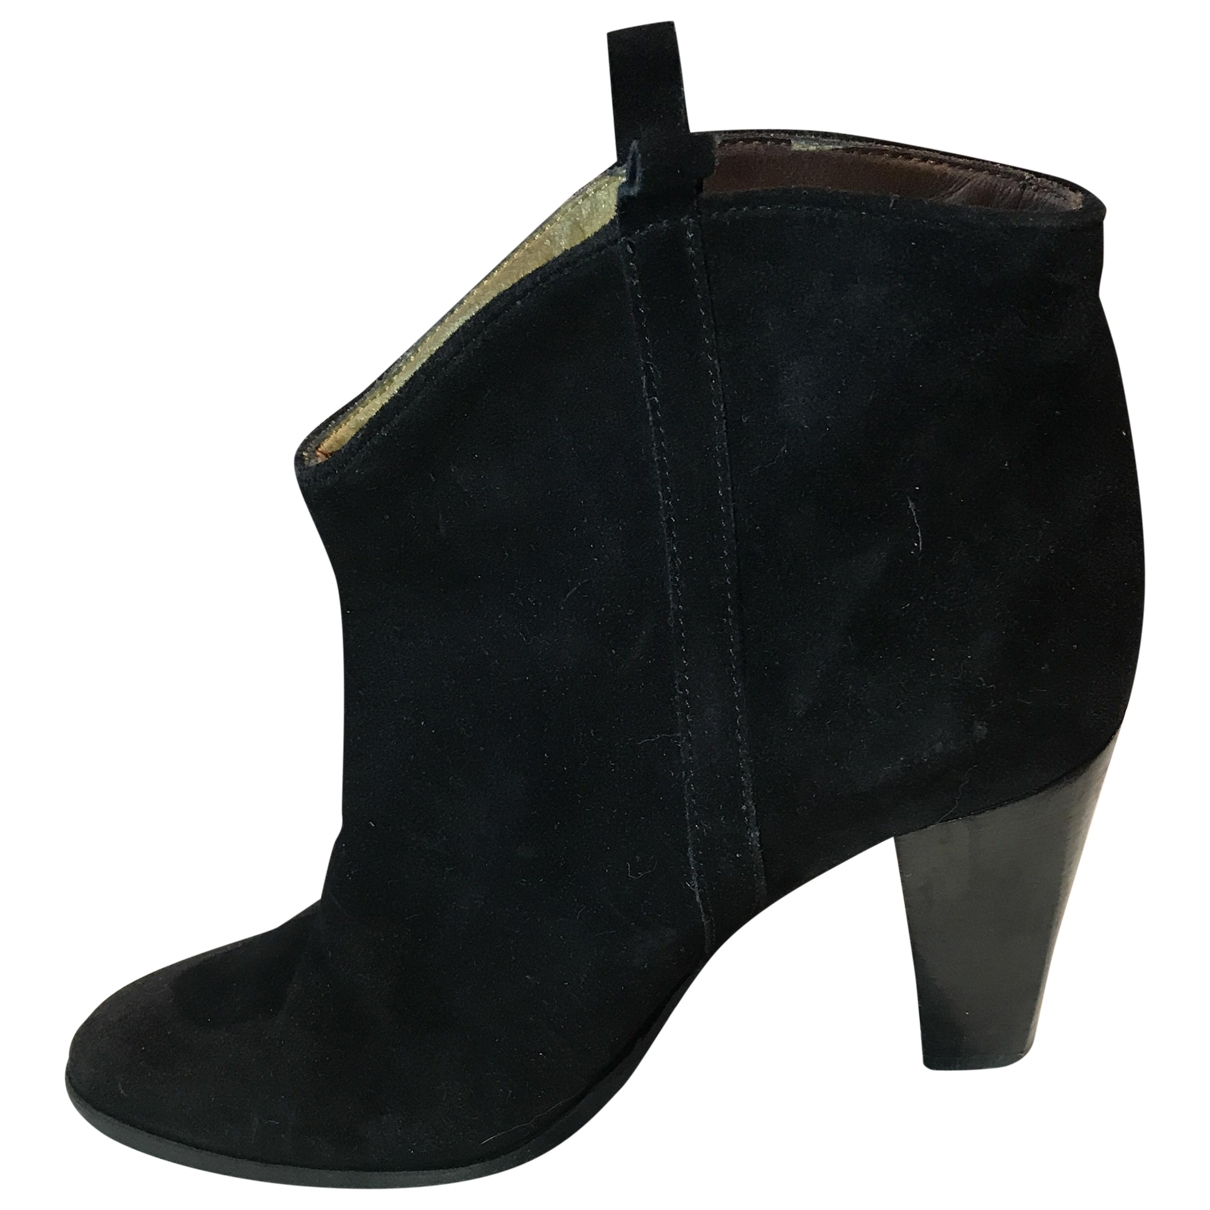 Isabel Marant Etoile \N Black Suede Ankle boots for Women 39 EU